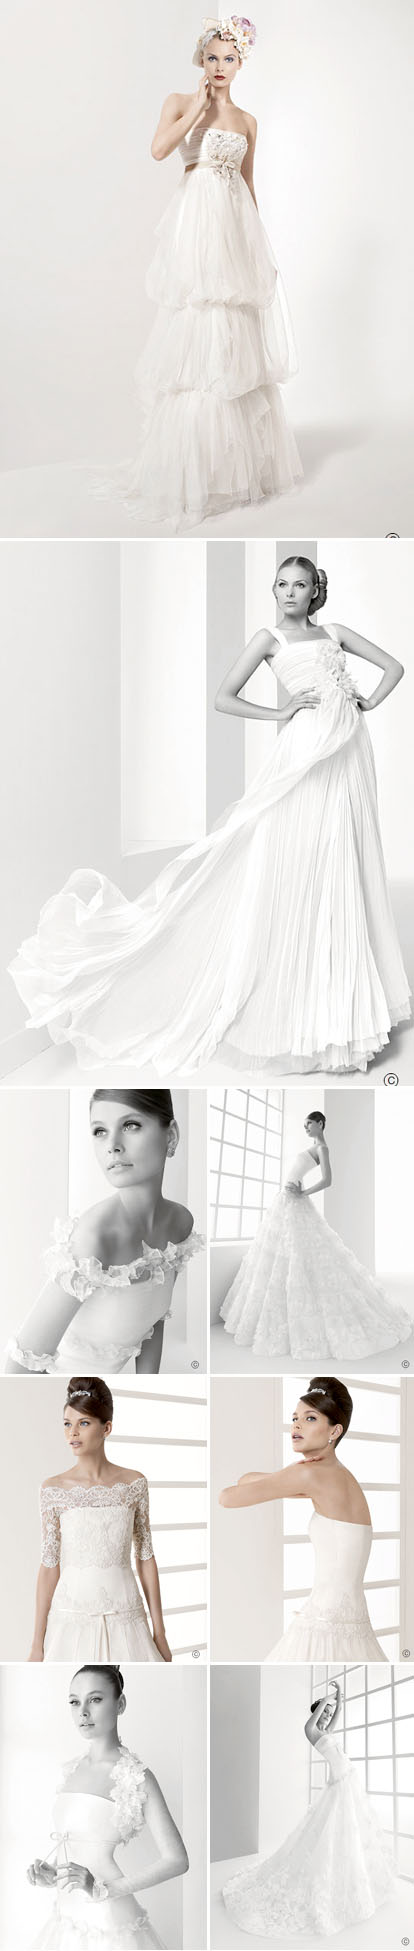 Wedding Gowns, Veils and Hair Accessories by Rosa Clara | Junebug ...